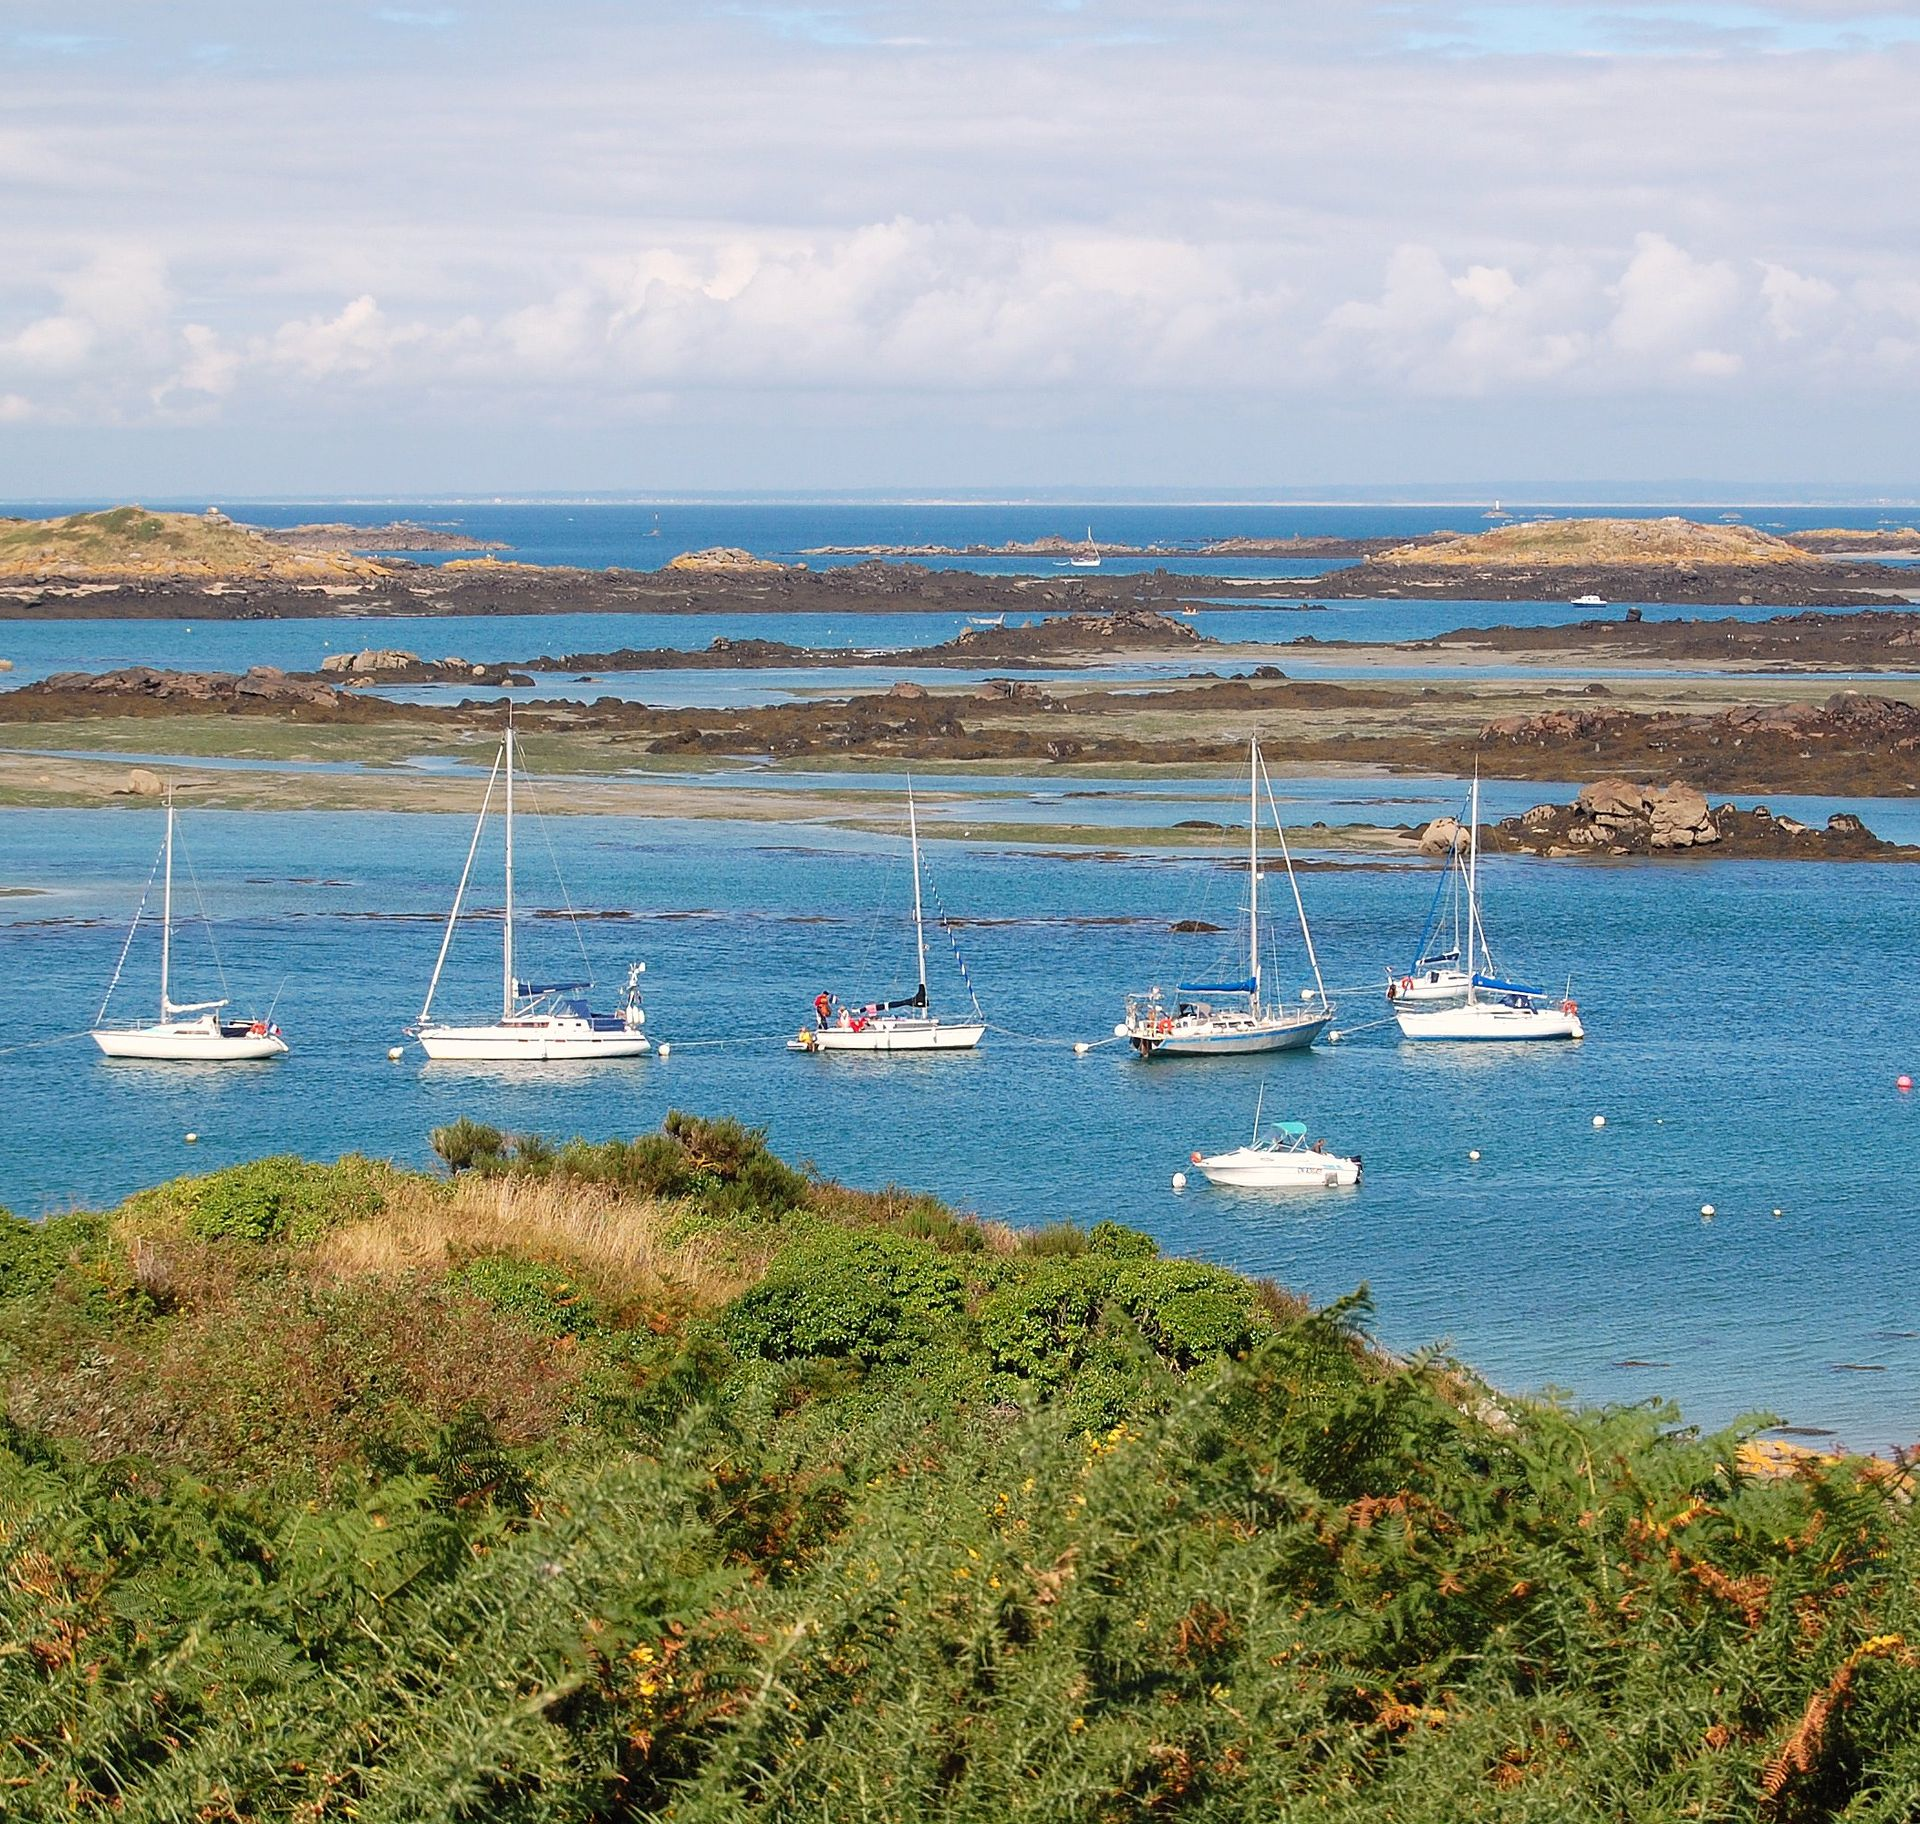 Îles Chausey, Normandie - France ©Wikipedia